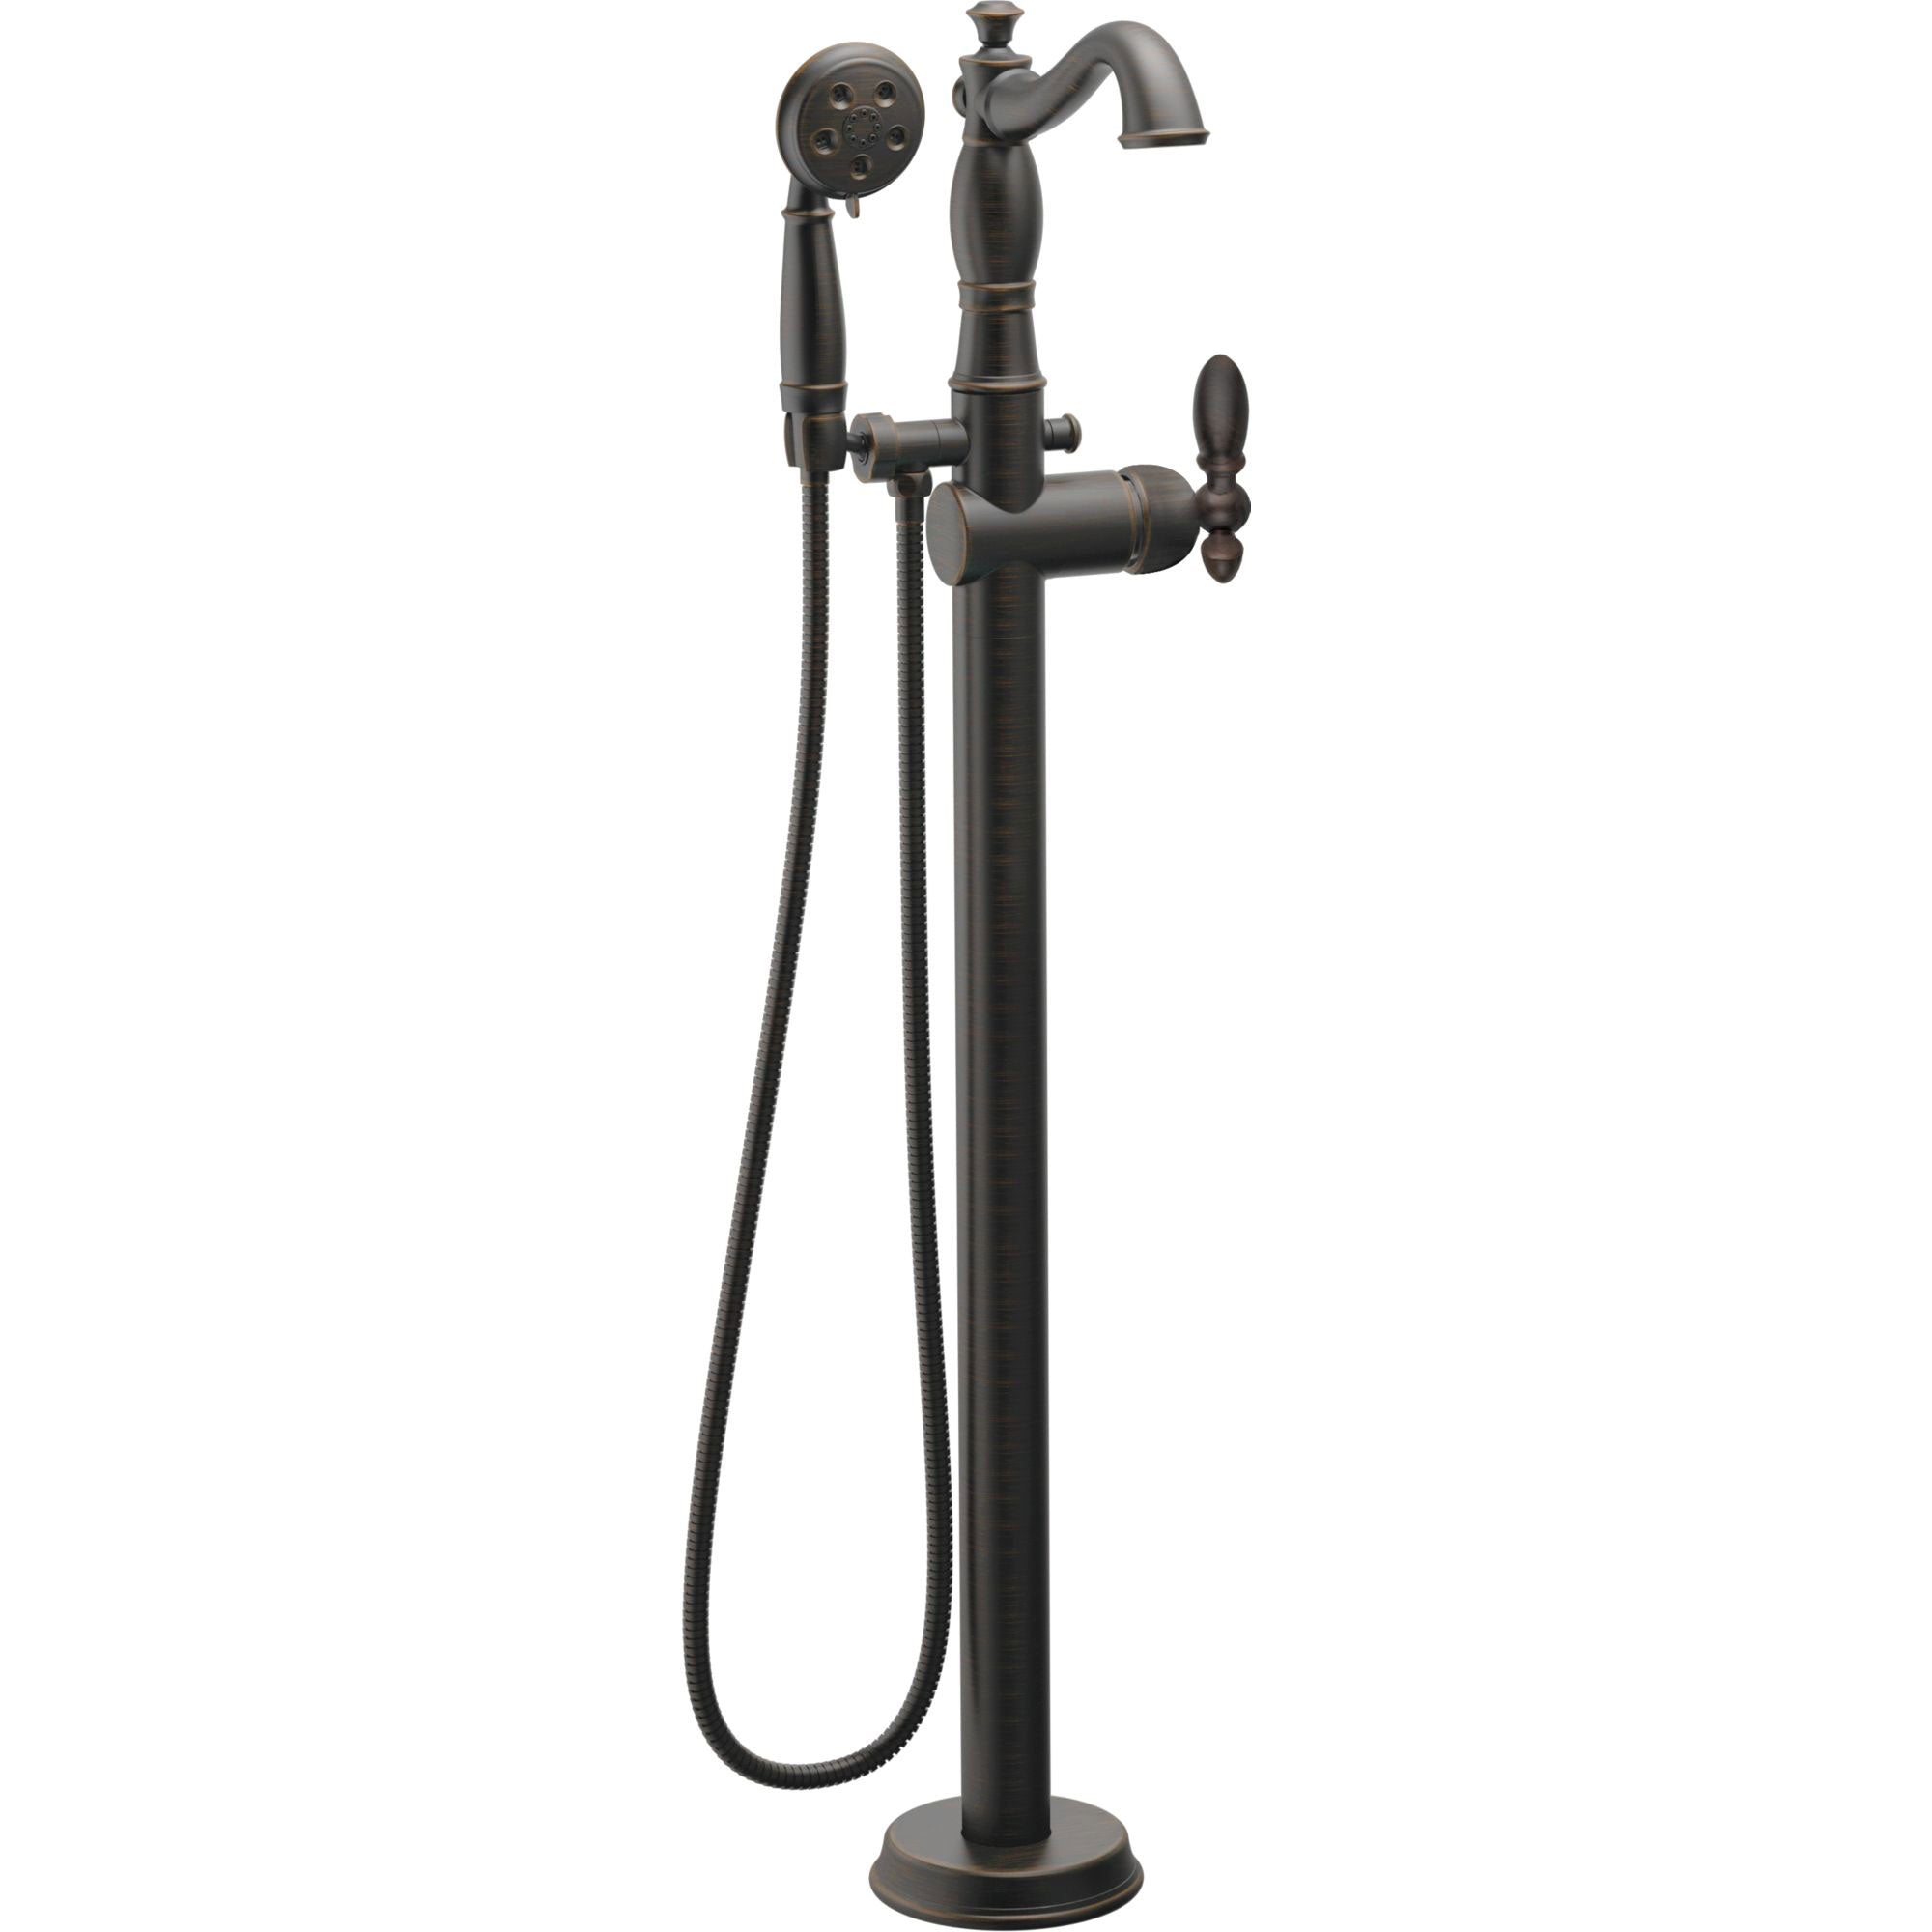 Delta Traditional Venetian Bronze Floor Mount Tub Filler Faucet with Hand Shower Spray INCLUDES Valve and Metal Lever Handle D1058V